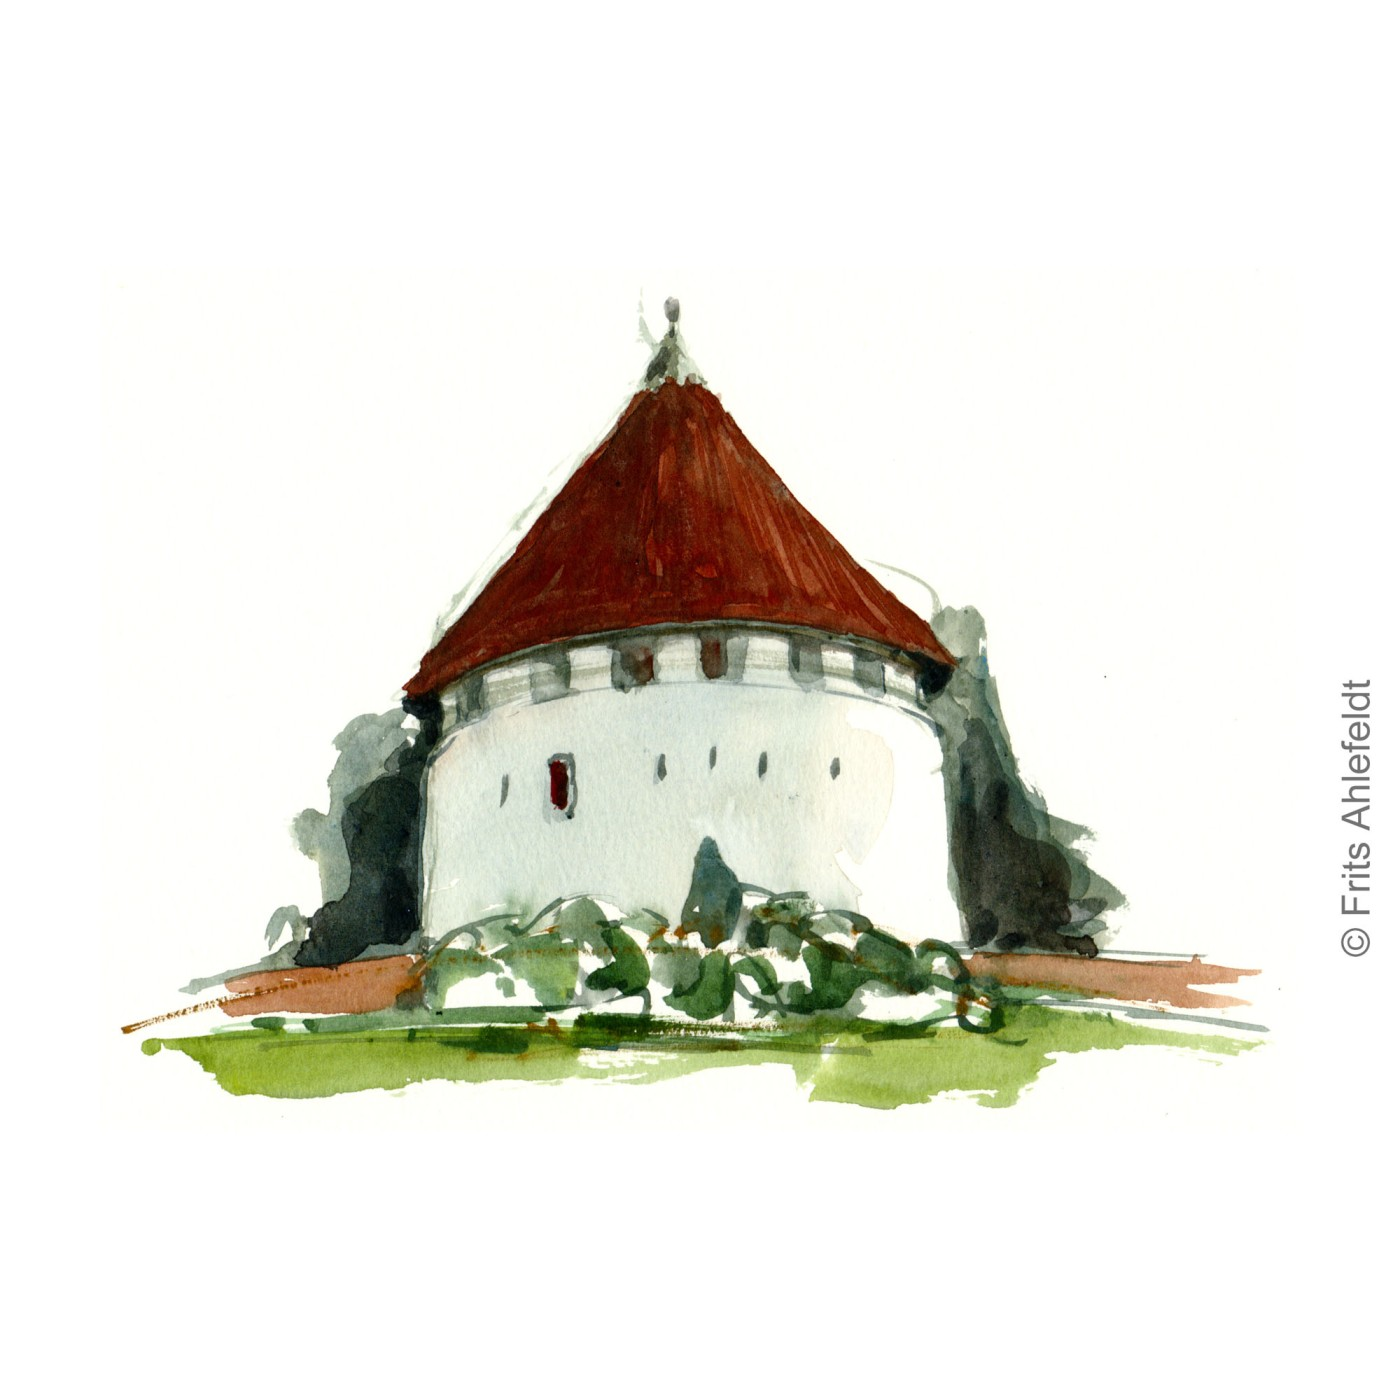 Roenne defense tower. Castel. Bornholm watercolor painting by Frits Ahlefeldt